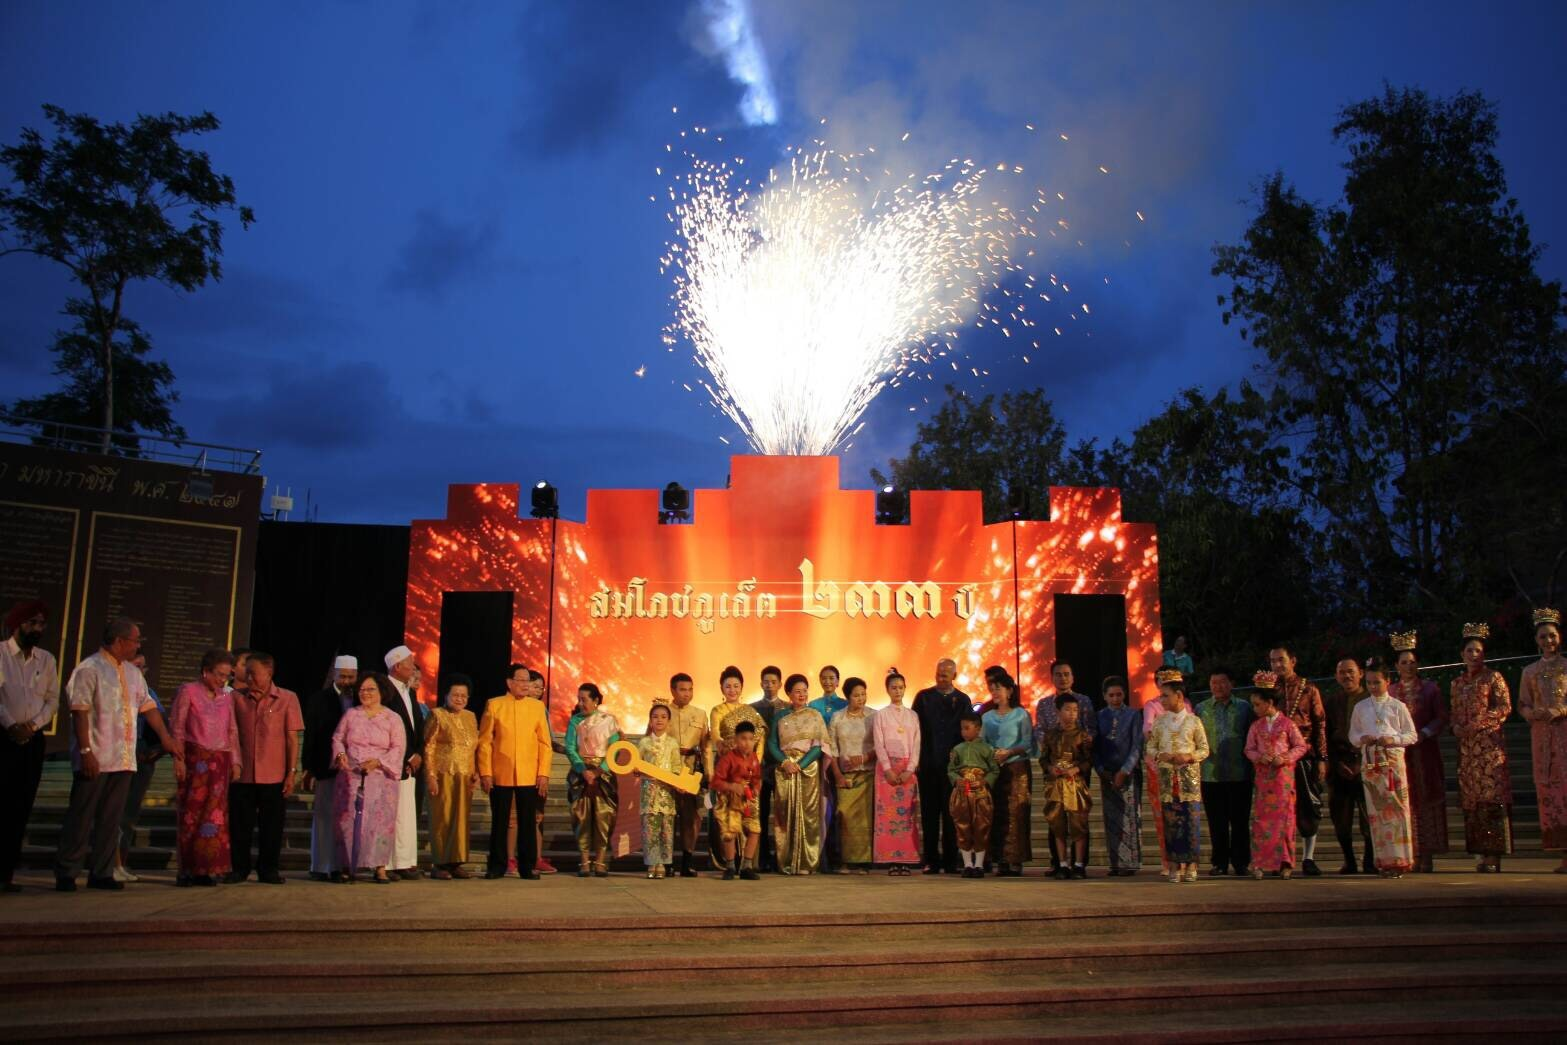 Phuket's 233 Year Anniversary launched | The Thaiger